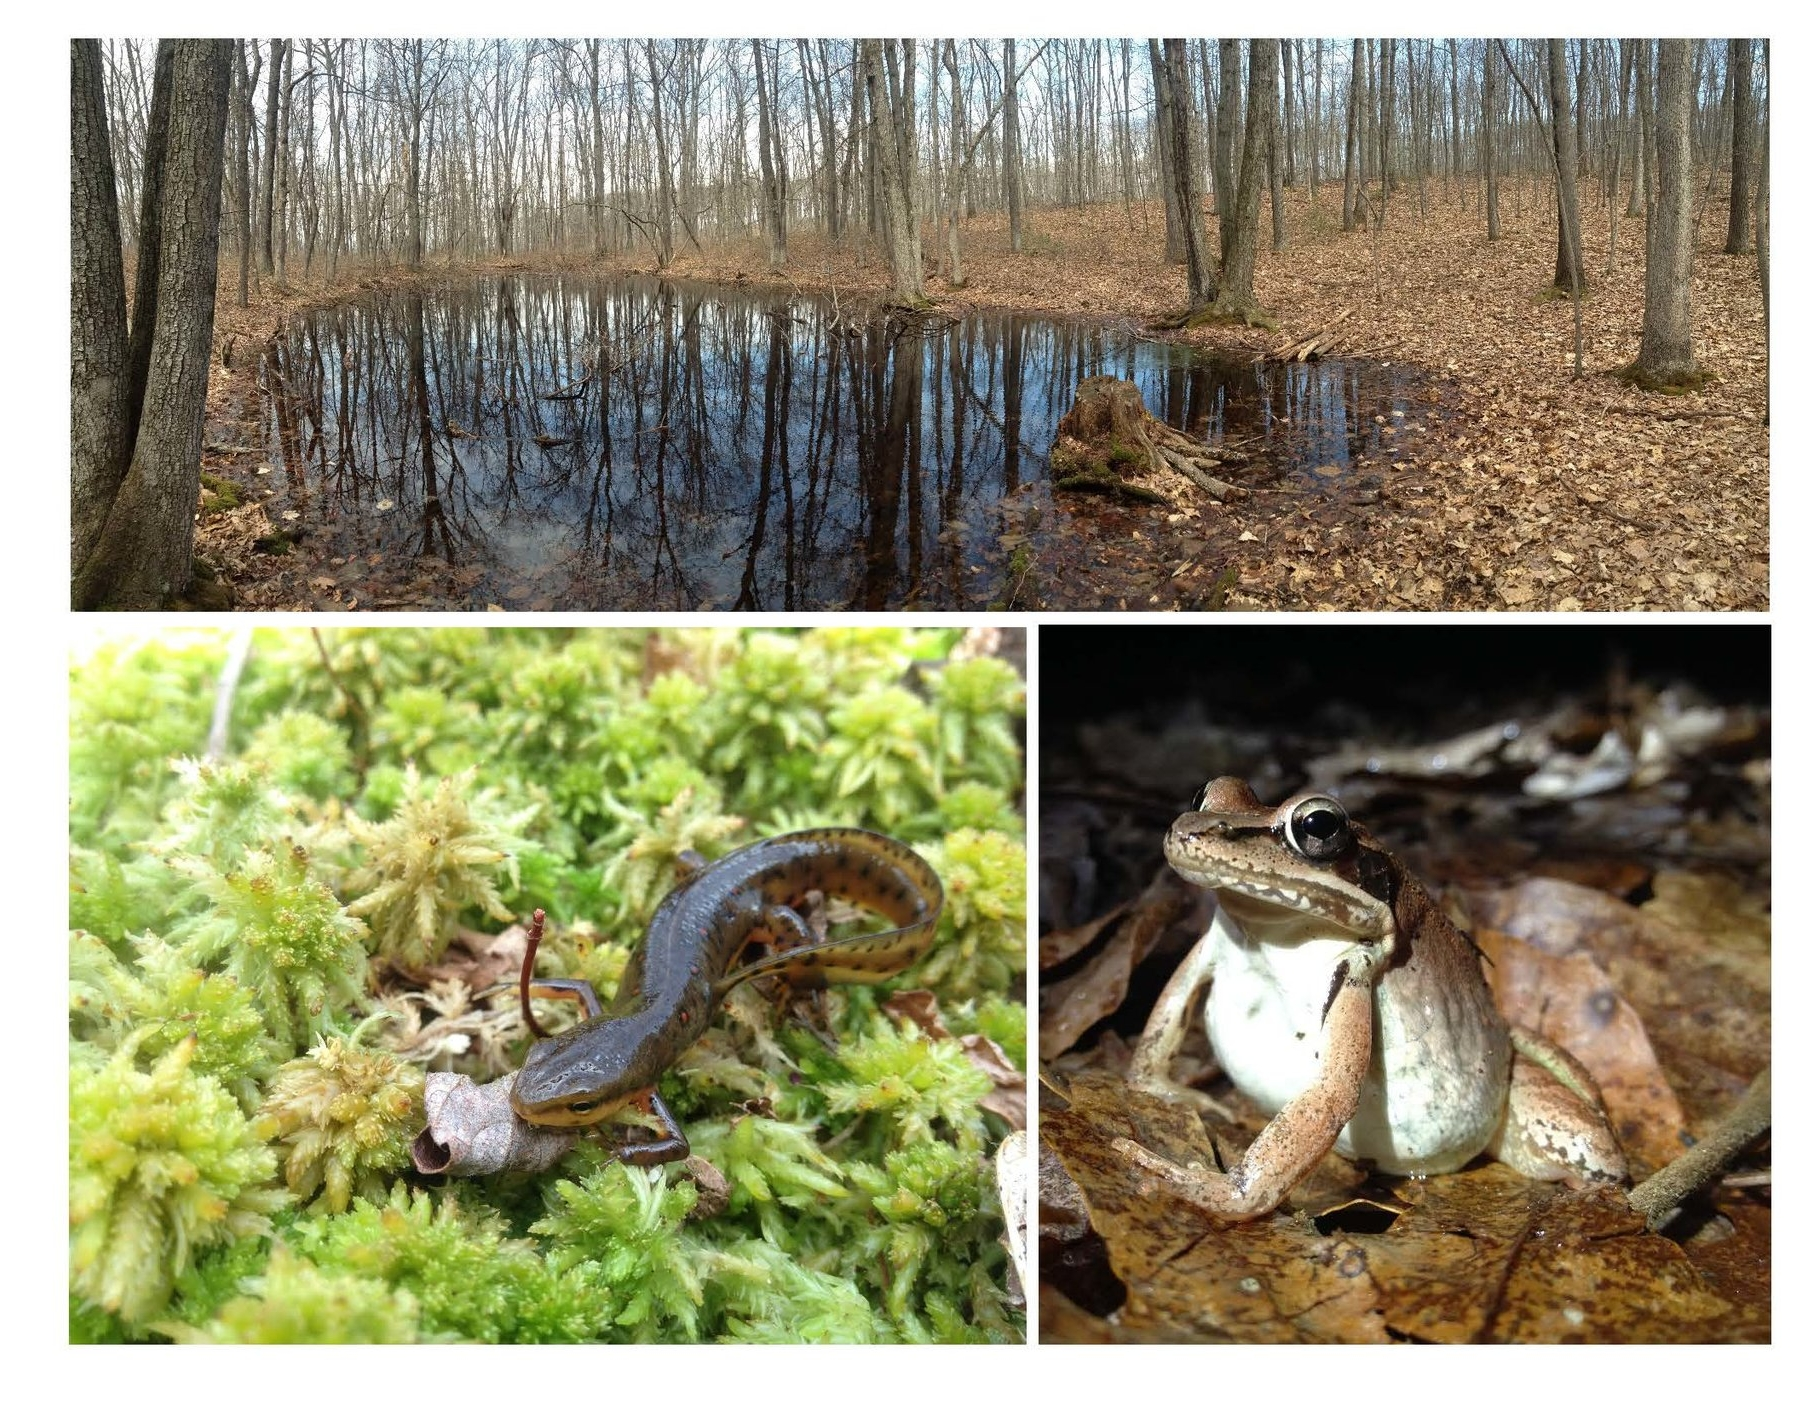 The images at right depict a vernal pool in early spring (top), an eastern newt ( Notopthalmus viridescen,  bottom left) and a female wood frog ( Lithobates sylvatica , bottom right).